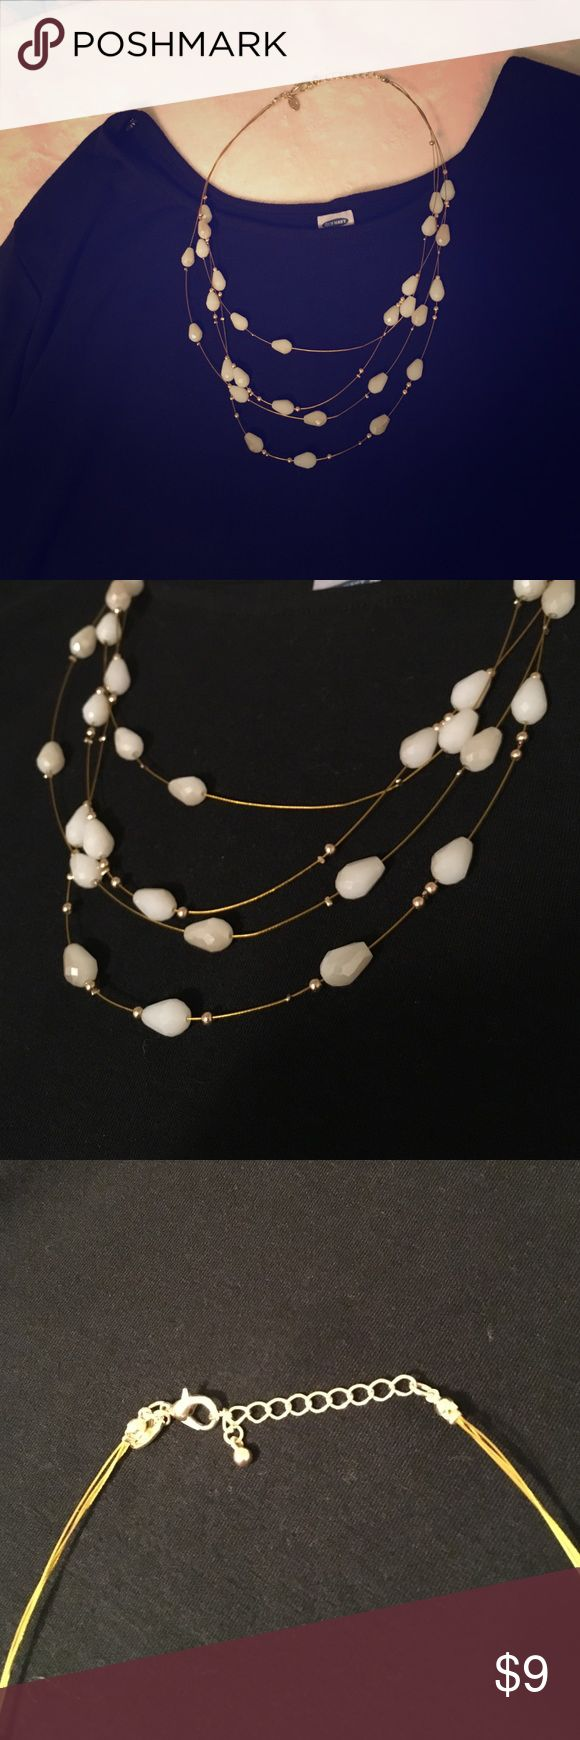 Necklace Gorgeous Gold and Cream necklace Jewelry Necklaces